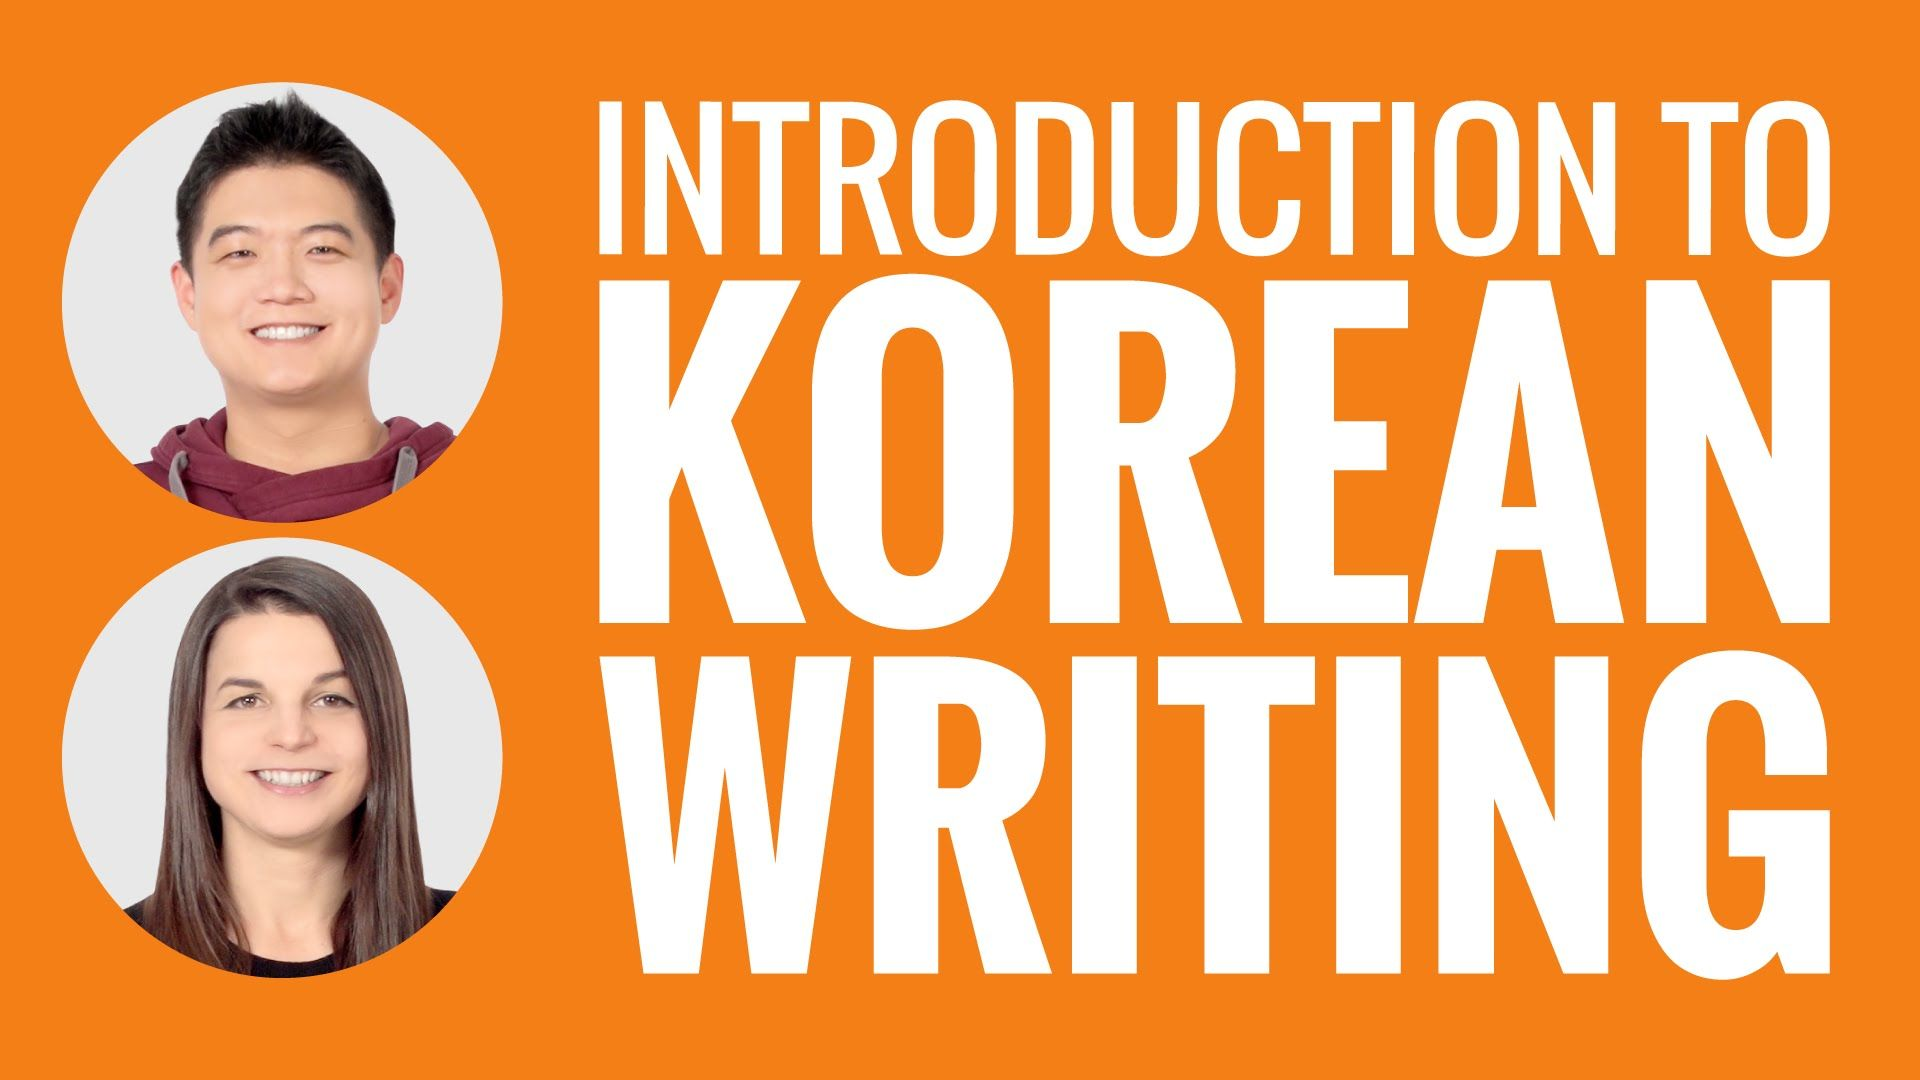 1920x1080 Introduction to Korean Writing - YouTube